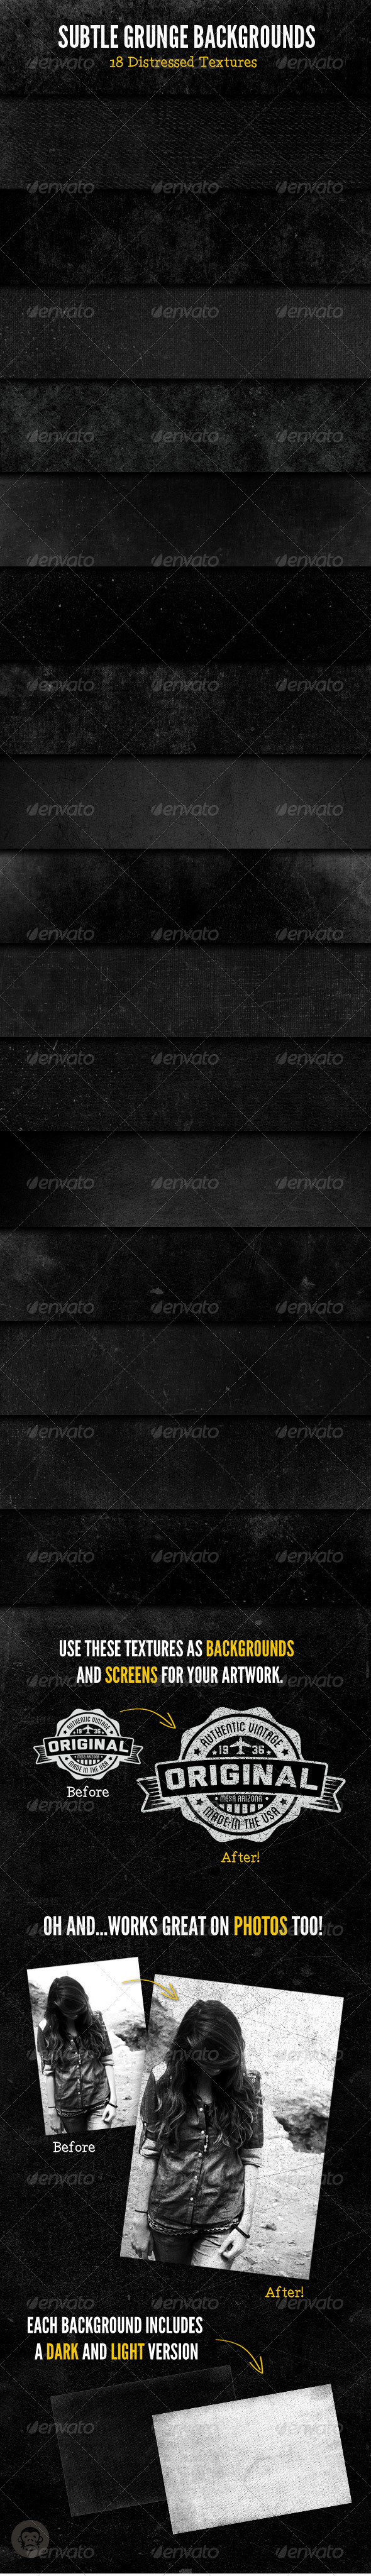 GraphicRiver Subtle Grunge Backgrounds 6245270